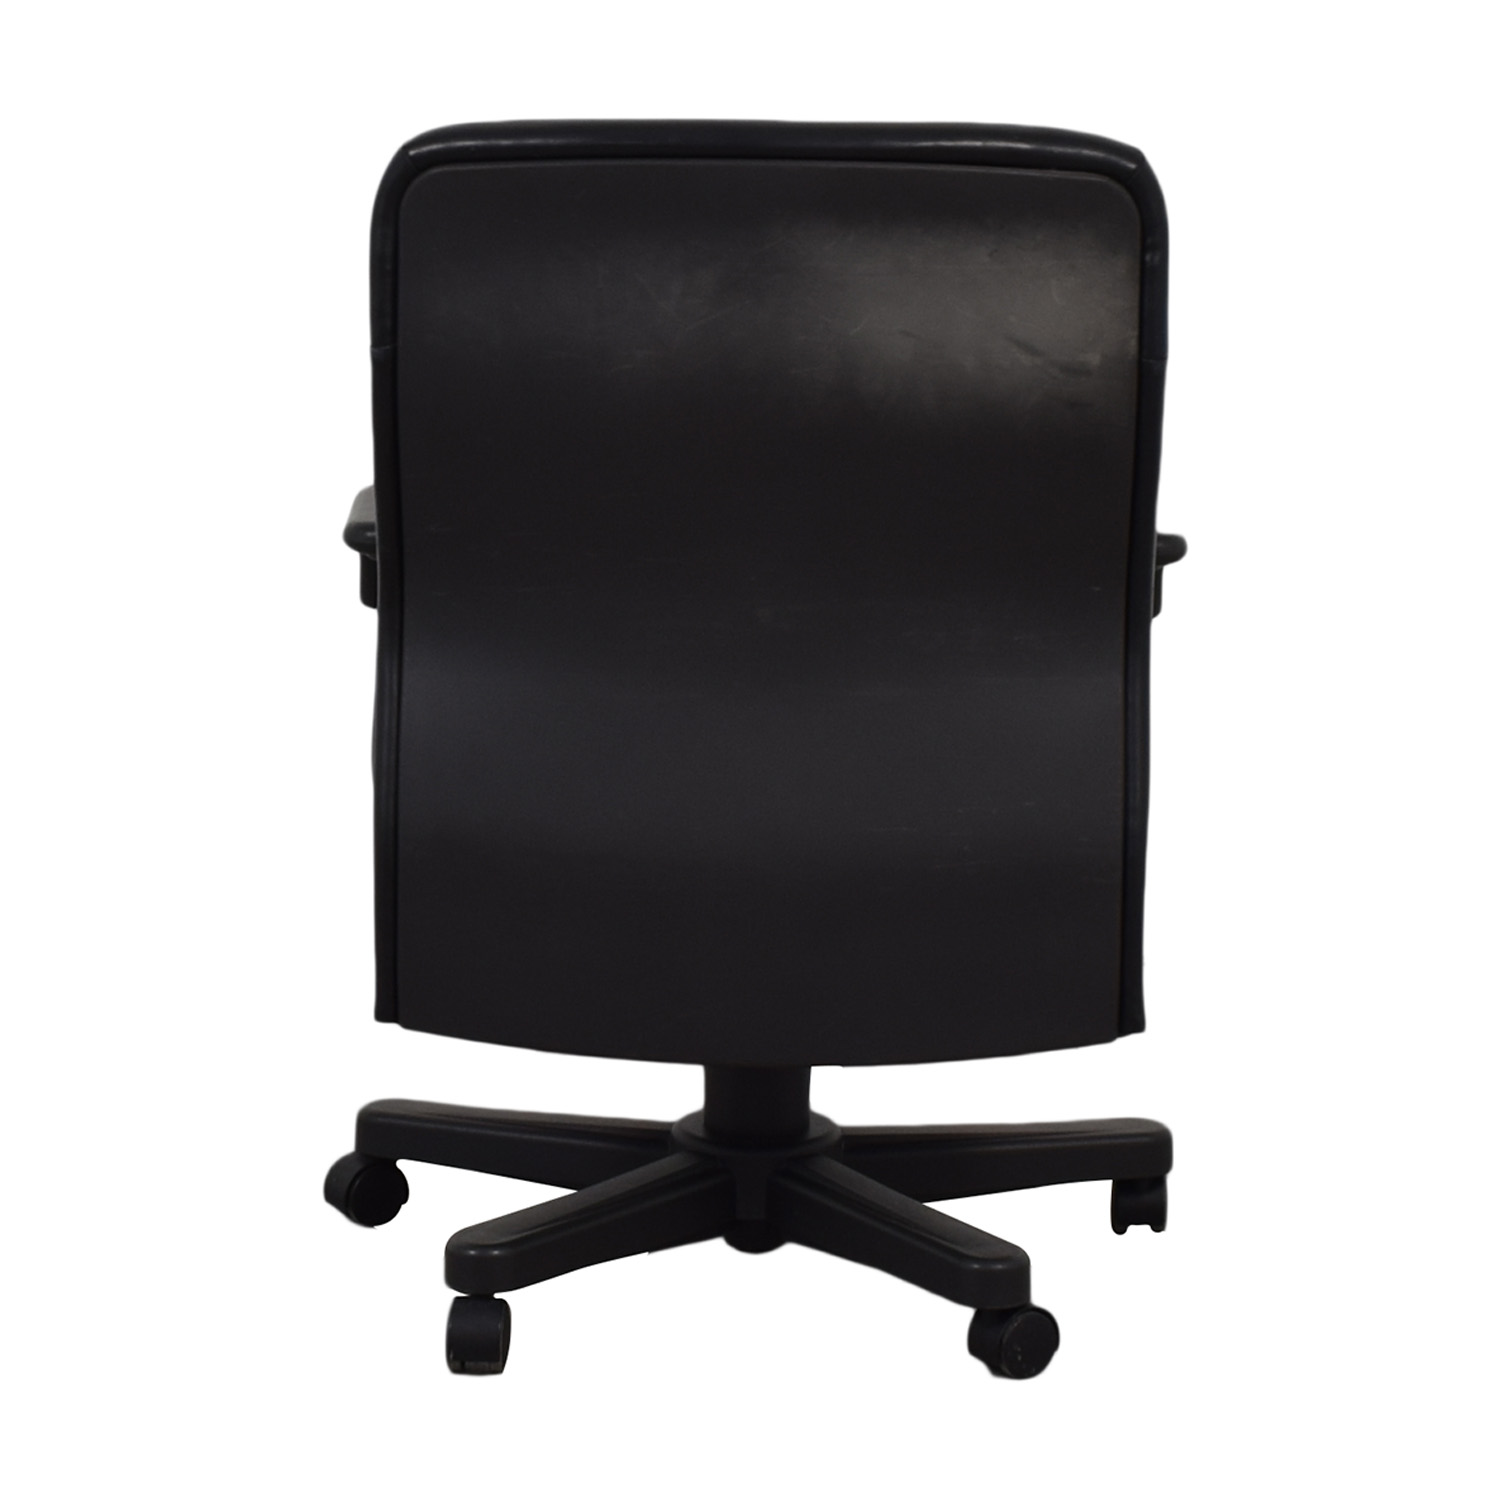 buy Knoll Knoll Black Leather Desk Chair online